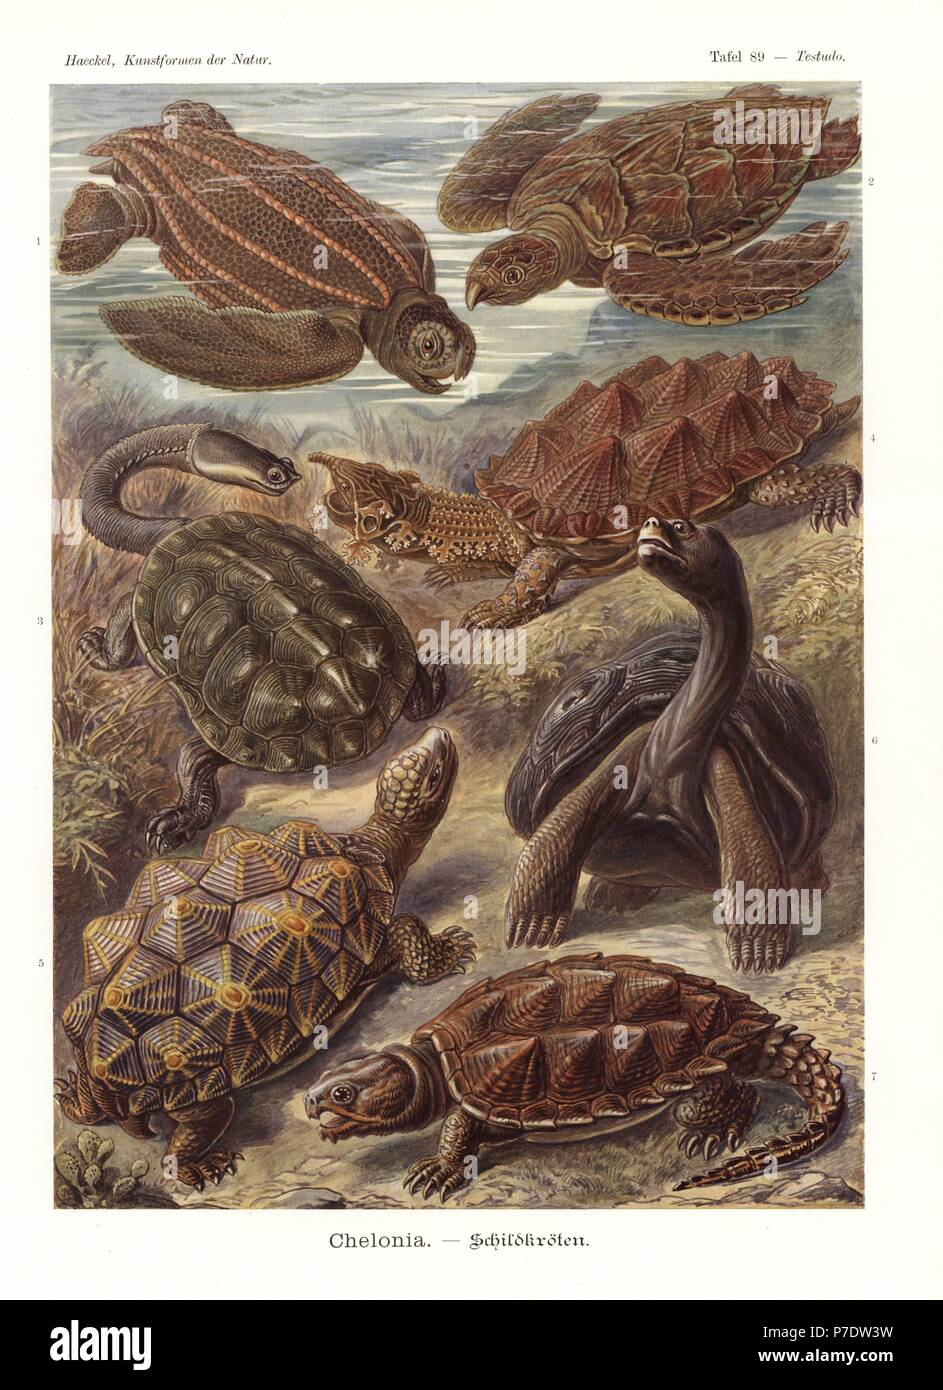 Chelonia: Leatherback turtle, Dermochelys coriacea, hawksbill turtle, Eretmochelys imbricata (critically endangered), Argentine snake-necked turtle, Hydromedusa tectifera, Mata mata, Geochelone nigra, geometric turtle, Psammobates geometricus (endangered), Galapagos tortoise, Dipsochelys dussumieri, and common snapping turtle, Chelydra serpentina. Chromolithograph by Adolf Glitsch from an illustration by Ernst Haeckel from Art Forms in Nature, Kunstformen der Natur, Liepzig, Germany, 1904. - Stock Image